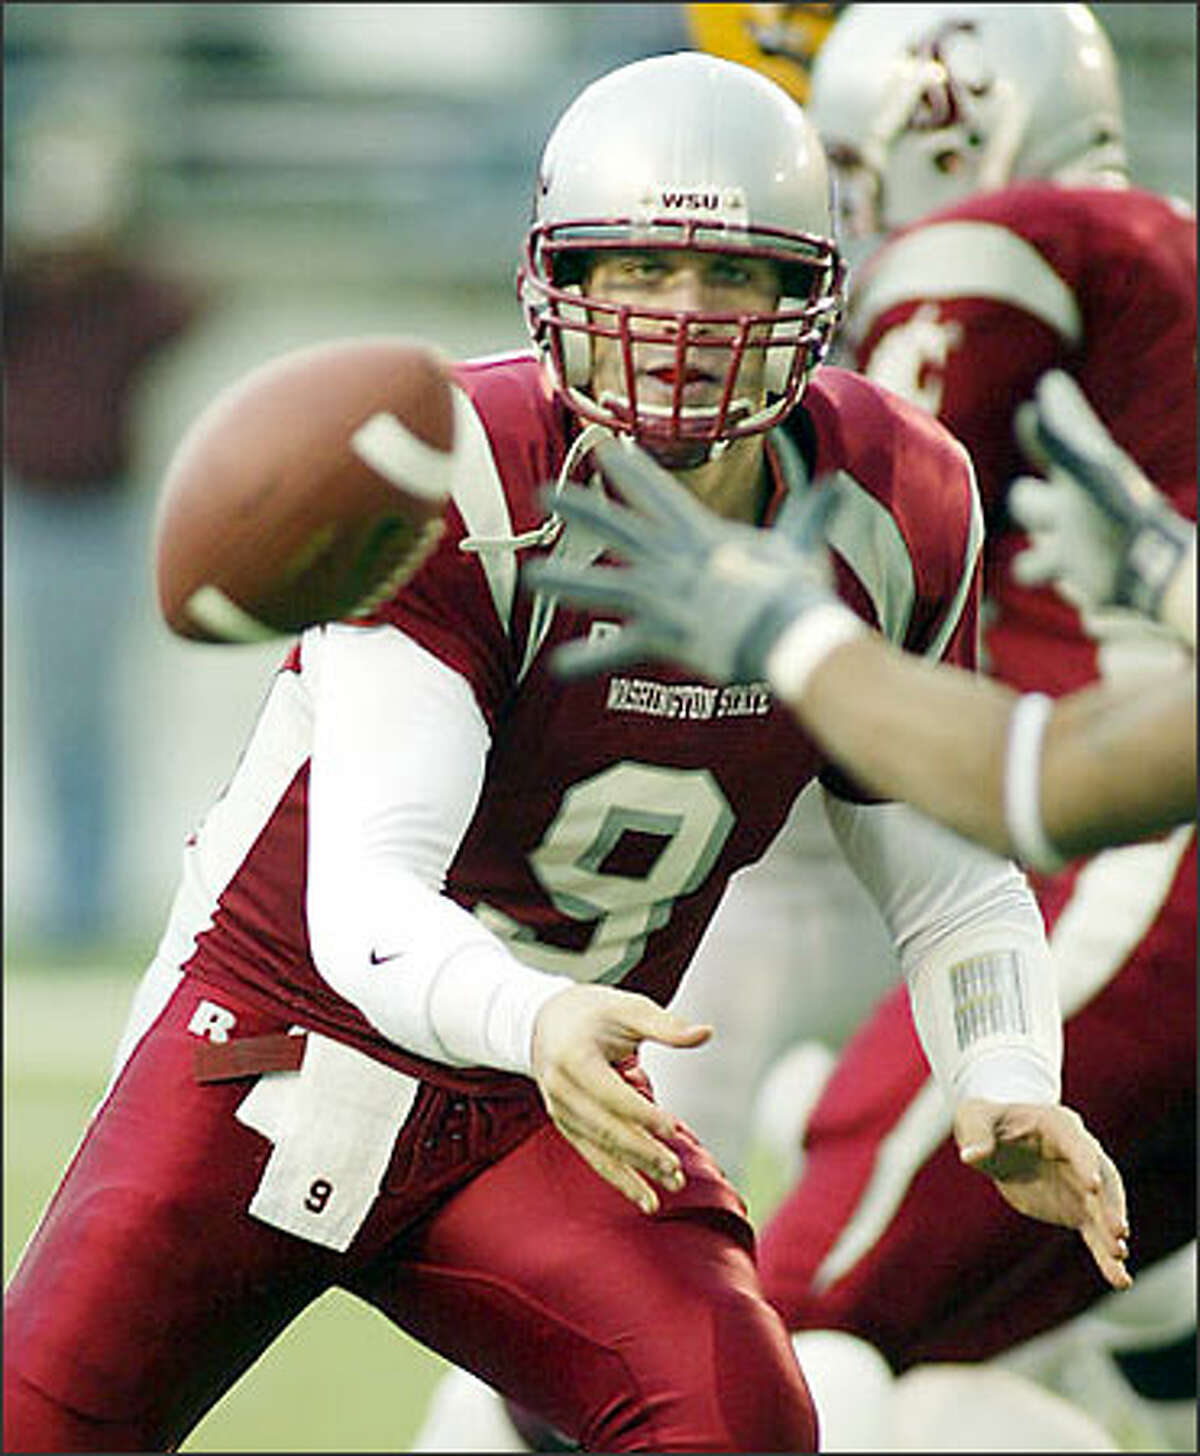 Washington State backup quarterback Josh Swogger pitches the ball in the second quarter against Arizona State, Saturday, Nov. 15, 2003, at Martin Stadium in Pullman. Swogger came into the game to replace quarterback Matt Kegel, who was injured last week against UCLA but played into the second quarter Saturday before being replaced by Swogger. (AP Photo/Ted S. Warren)